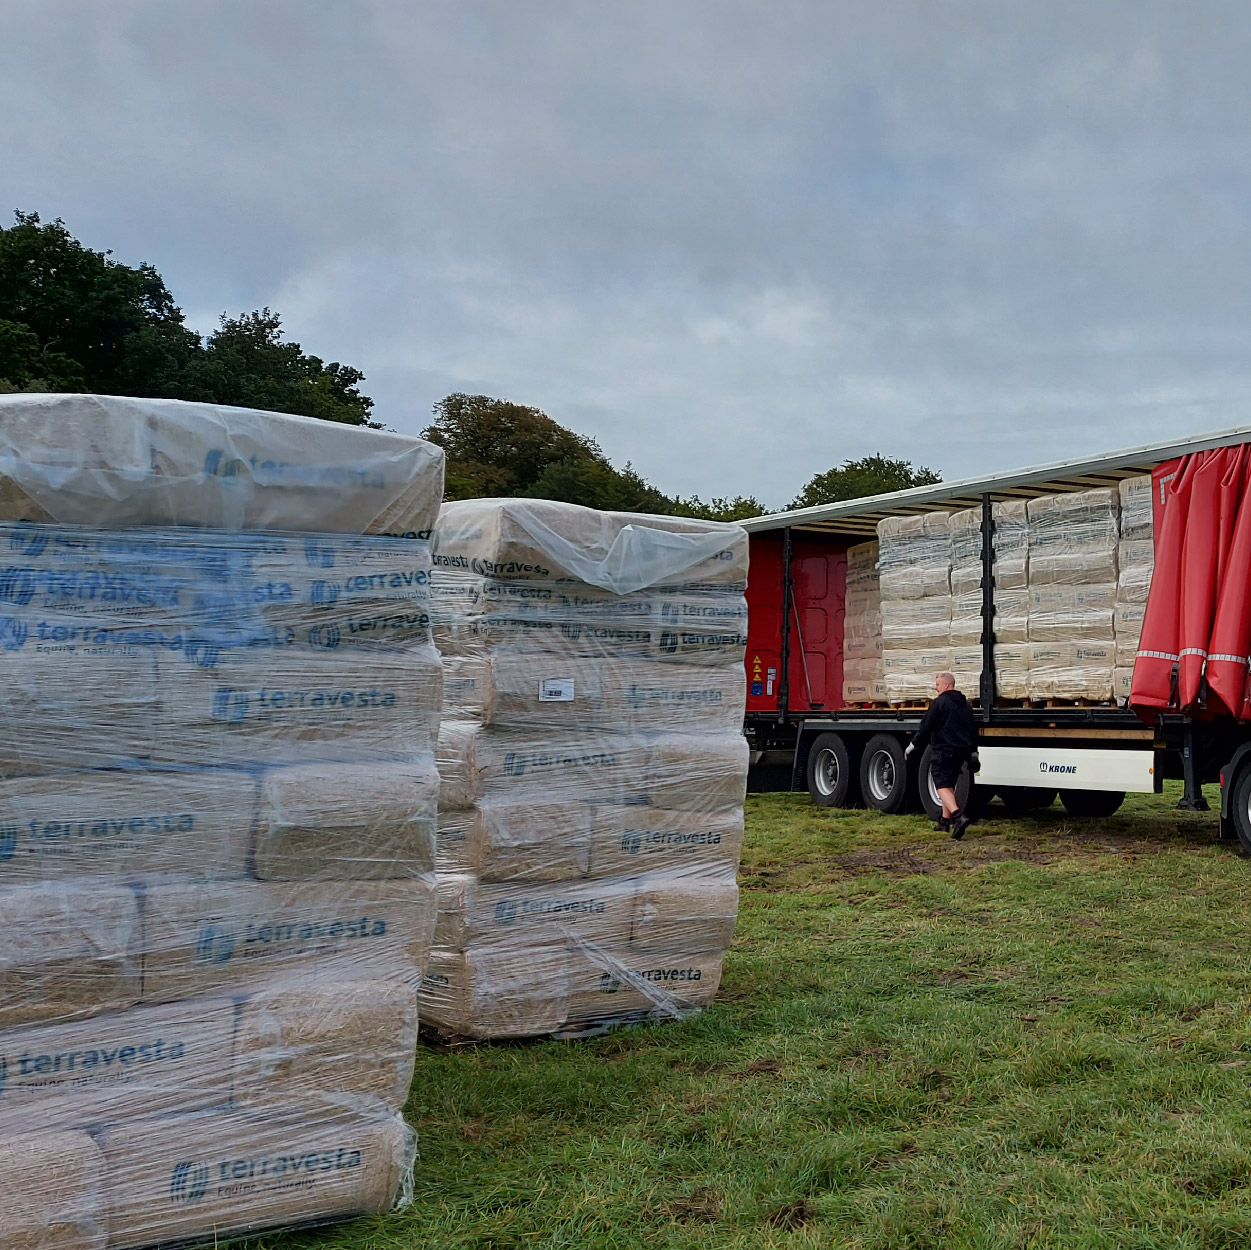 Pallets of horse bedding being unloaded